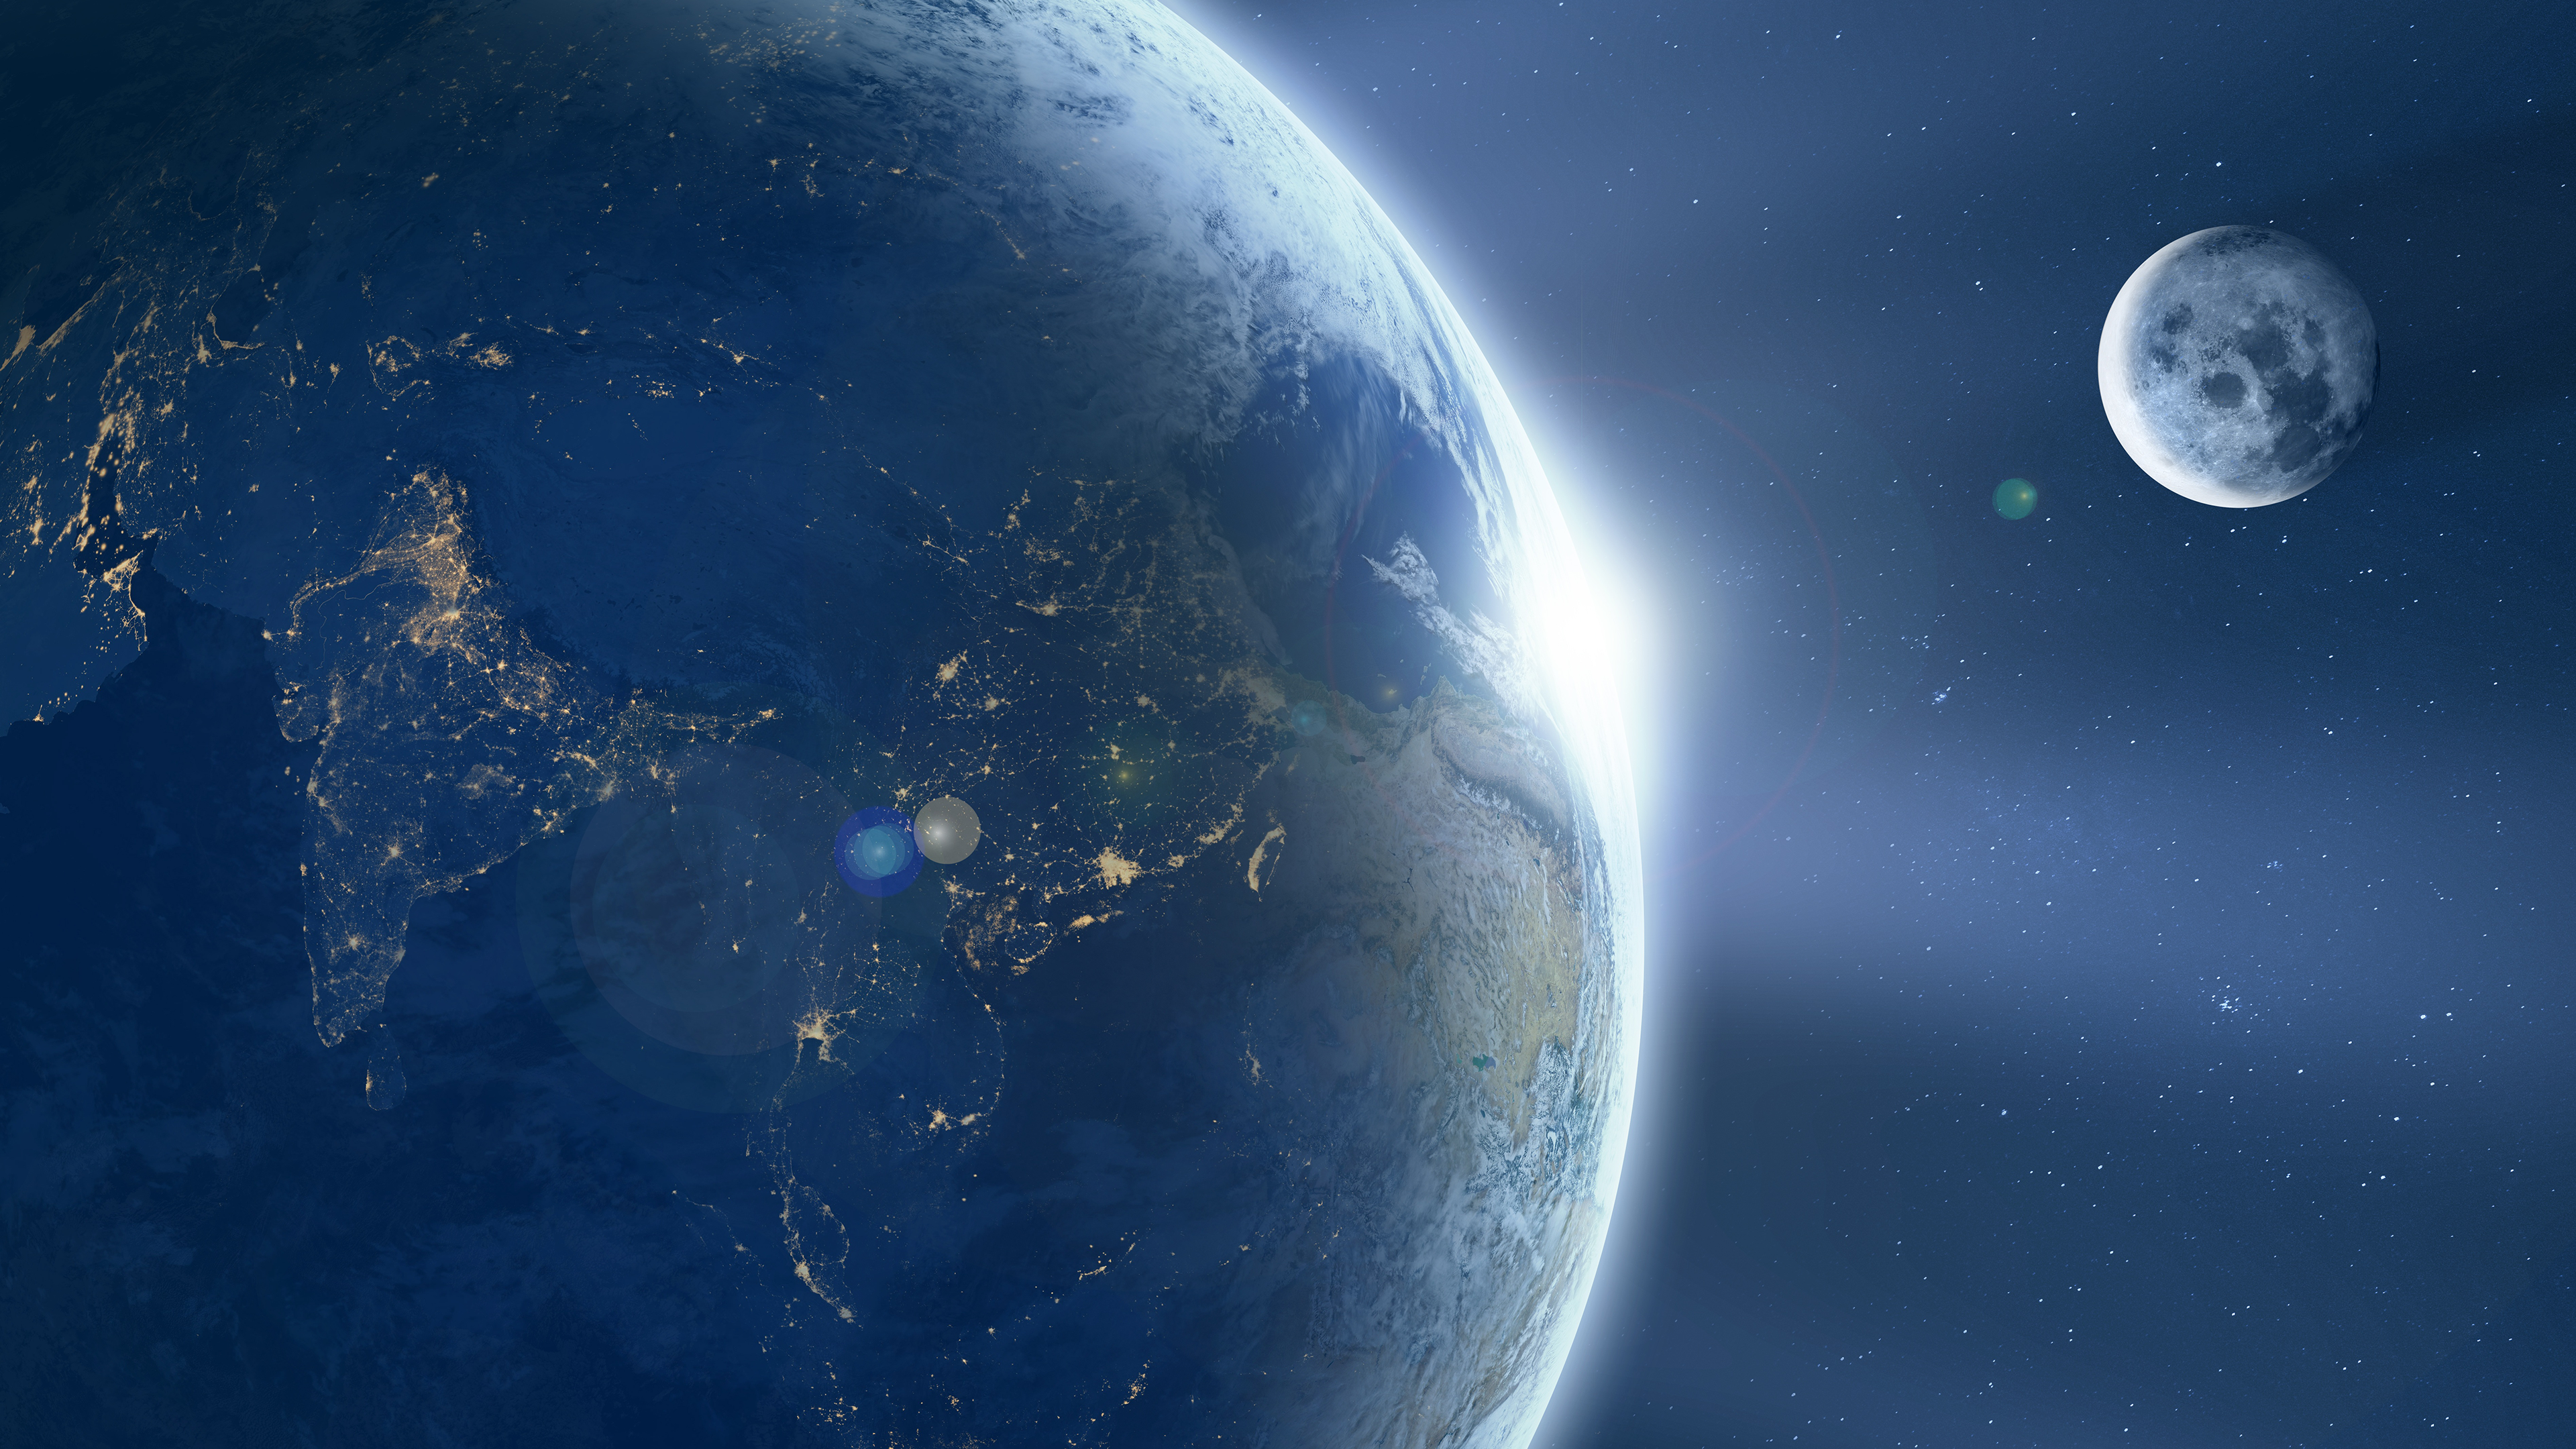 download free hd earth from space desktop wallpaper space hd space png 3840 2160